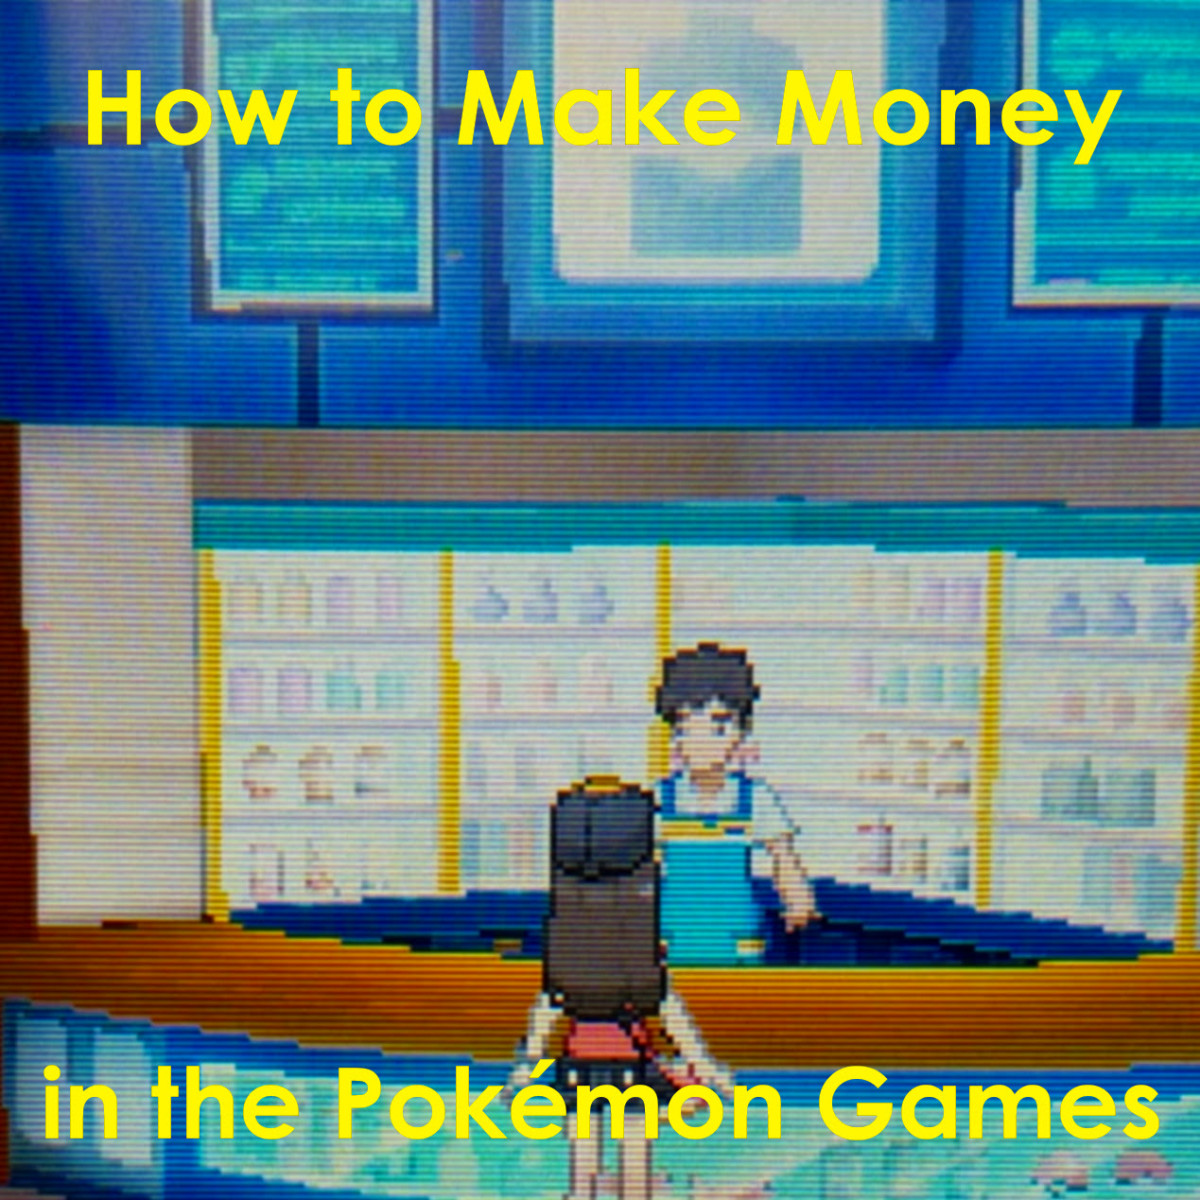 How to Make Money in the Pokémon Games